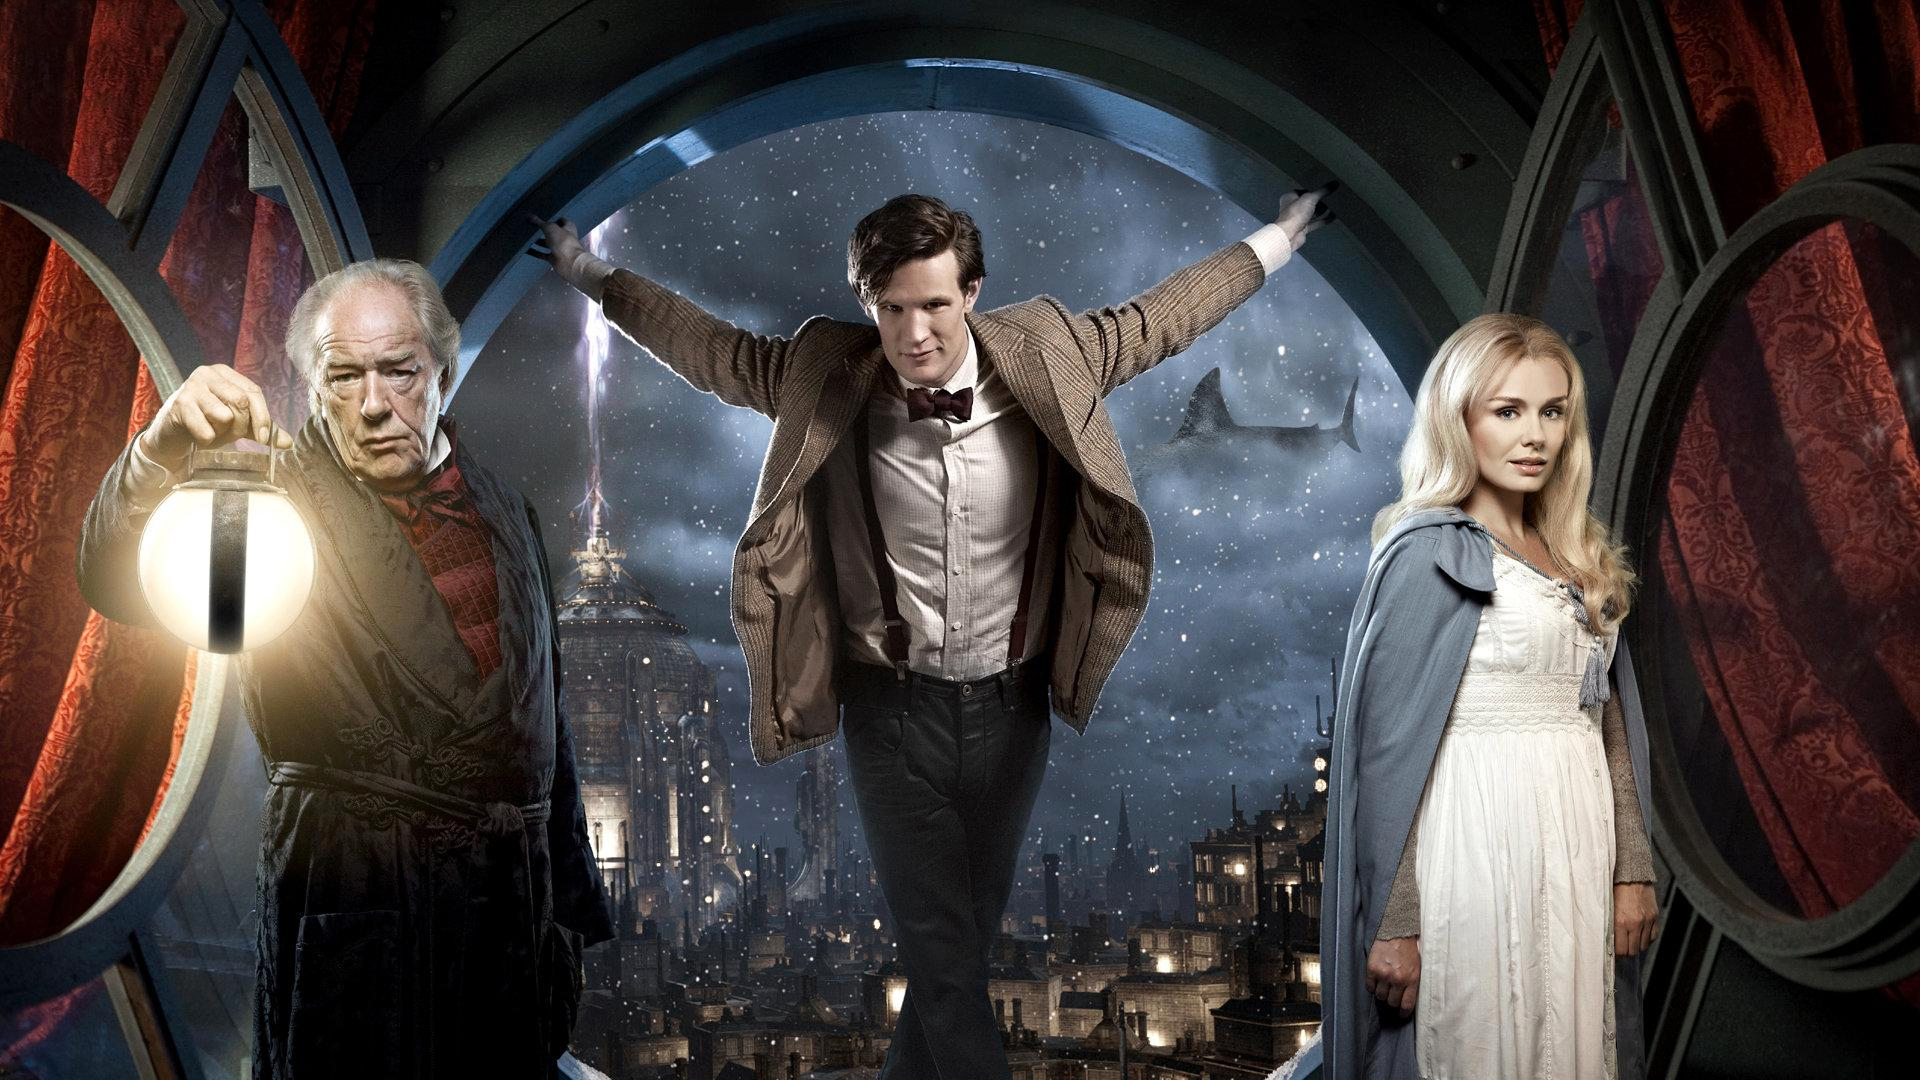 A Christmas Carol Movie.Doctor Who 10 Things You May Not Know About A Christmas